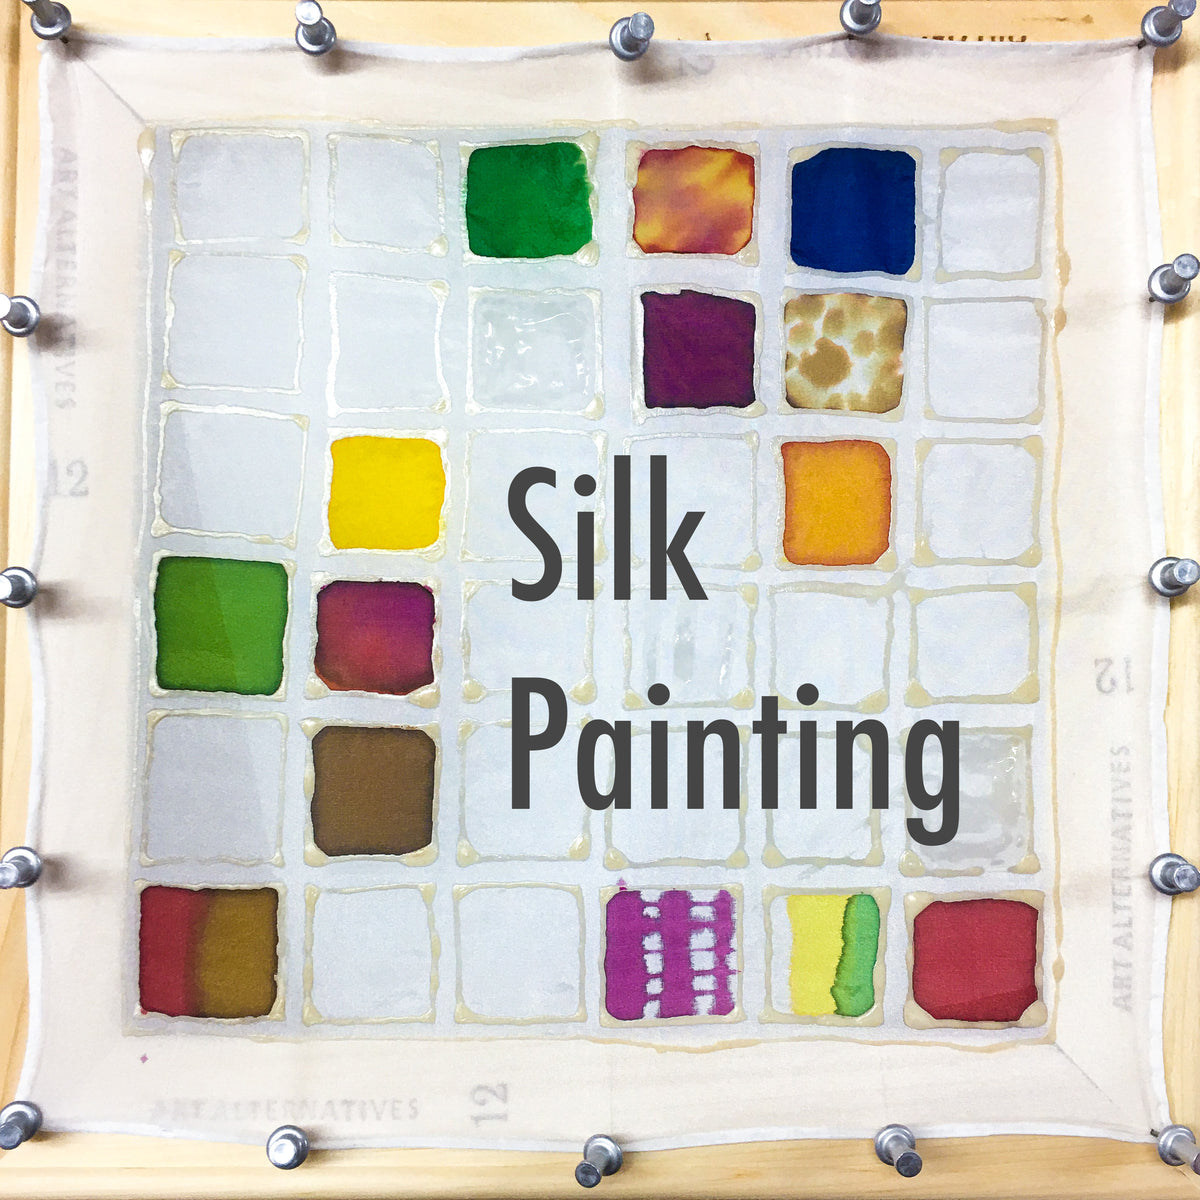 Silk Painting with René Shoemaker